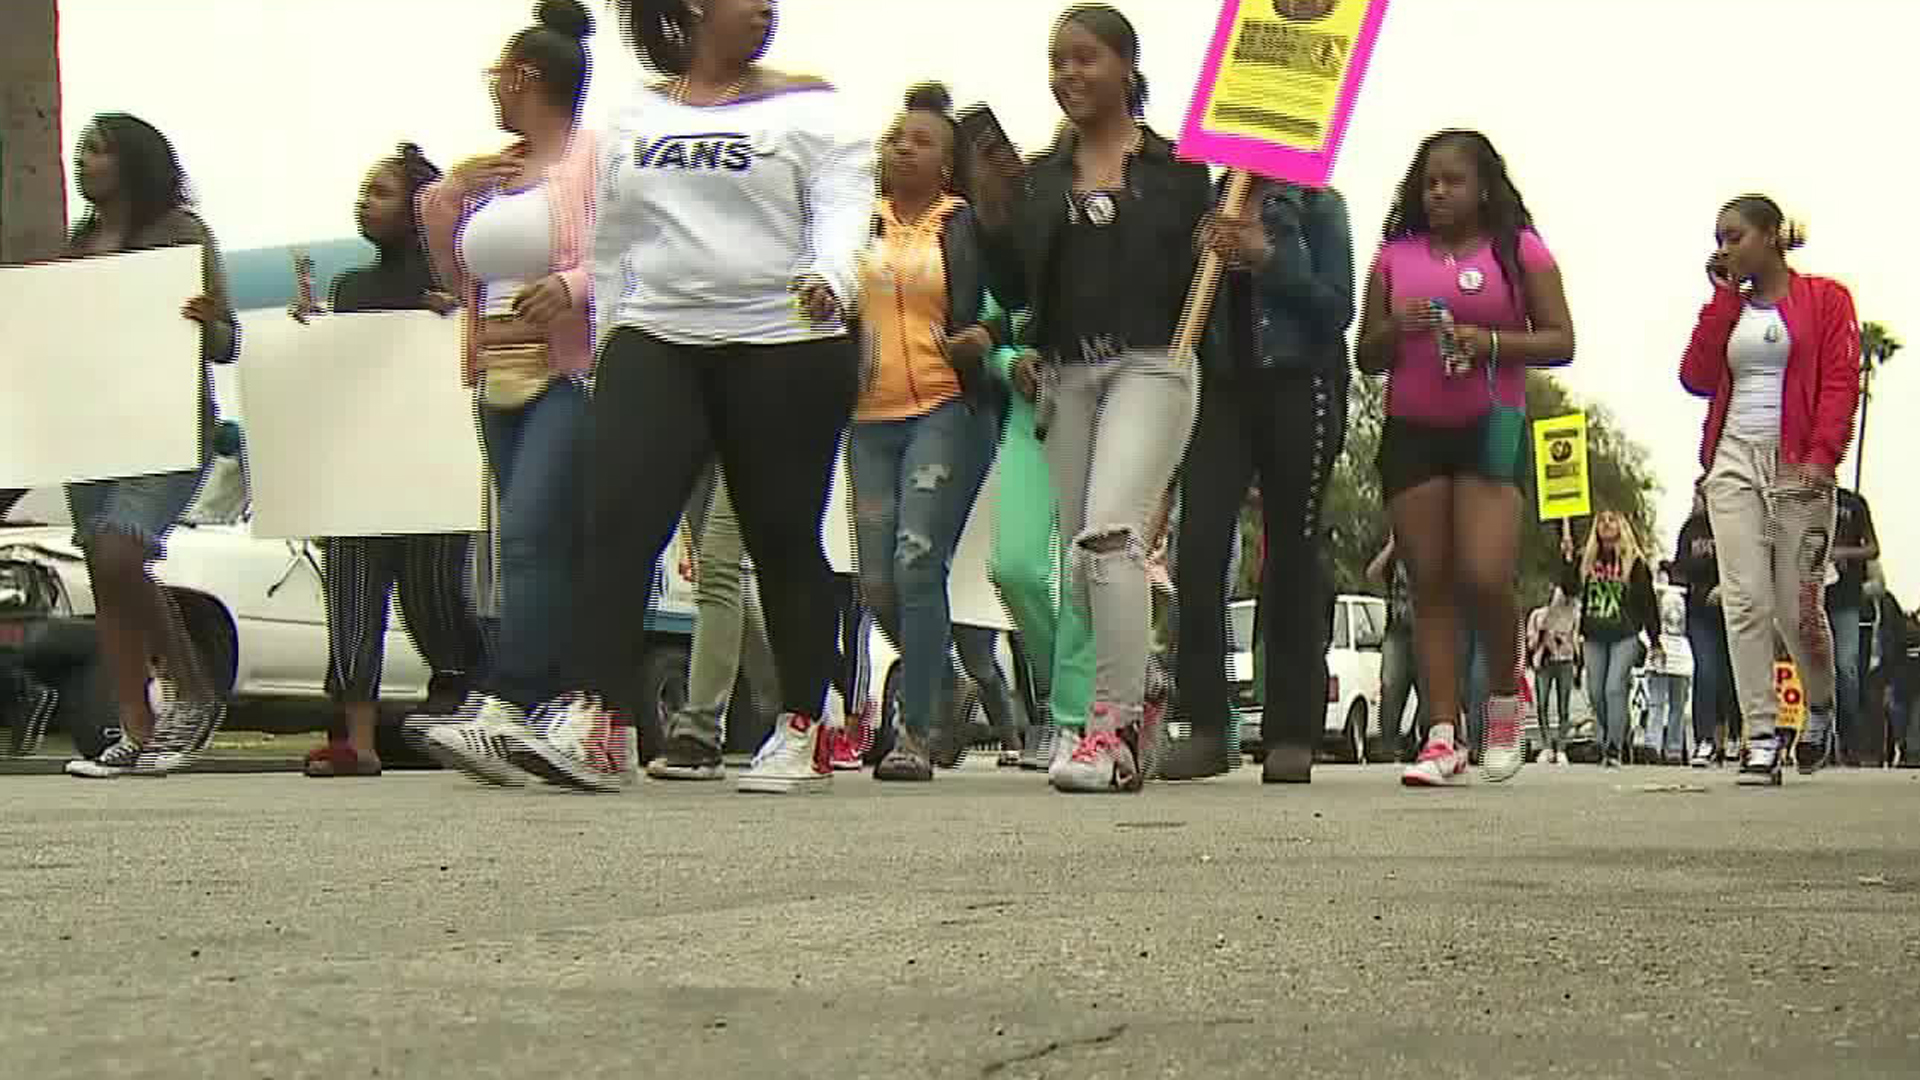 Protestors march in an area of South Los Angeles on Feb. 10, 2018, near where 16-year-old Anthony Weber was shot dead by an L.A. County sheriff's deputy nearly a week earlier, demanding answers in the teen's death. (Credit: KTLA)